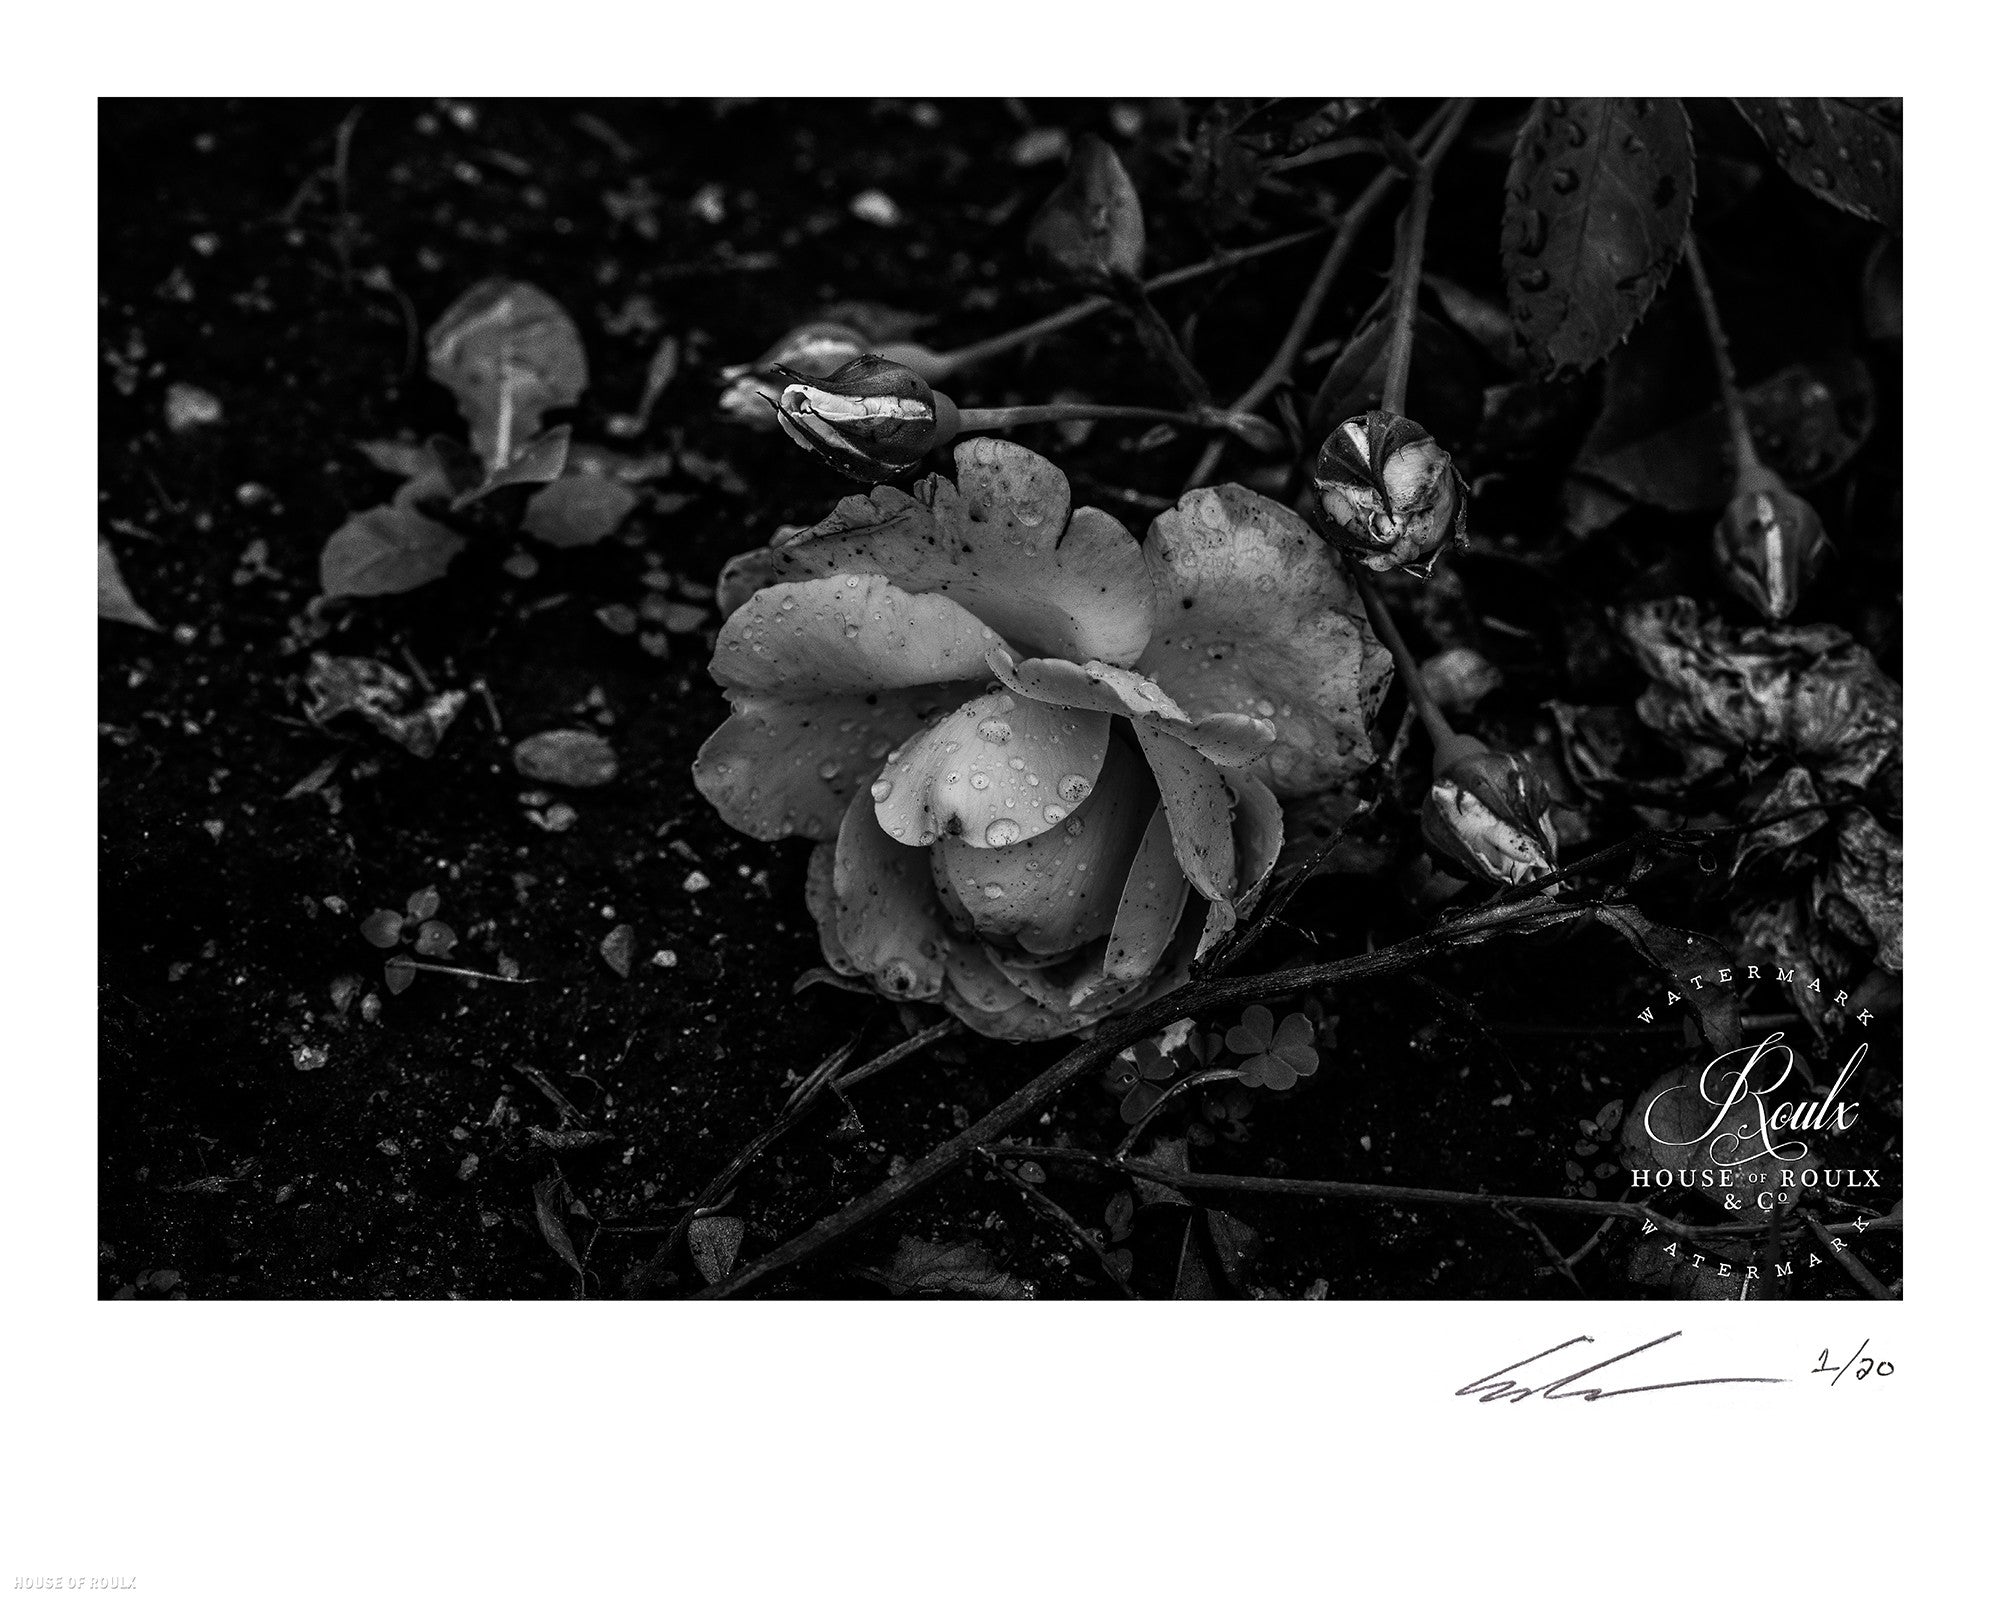 flower by june of 87 limited edition archival print 16 x 20 rh houseofroulx com 16x20 tiny house 16 x 20 house